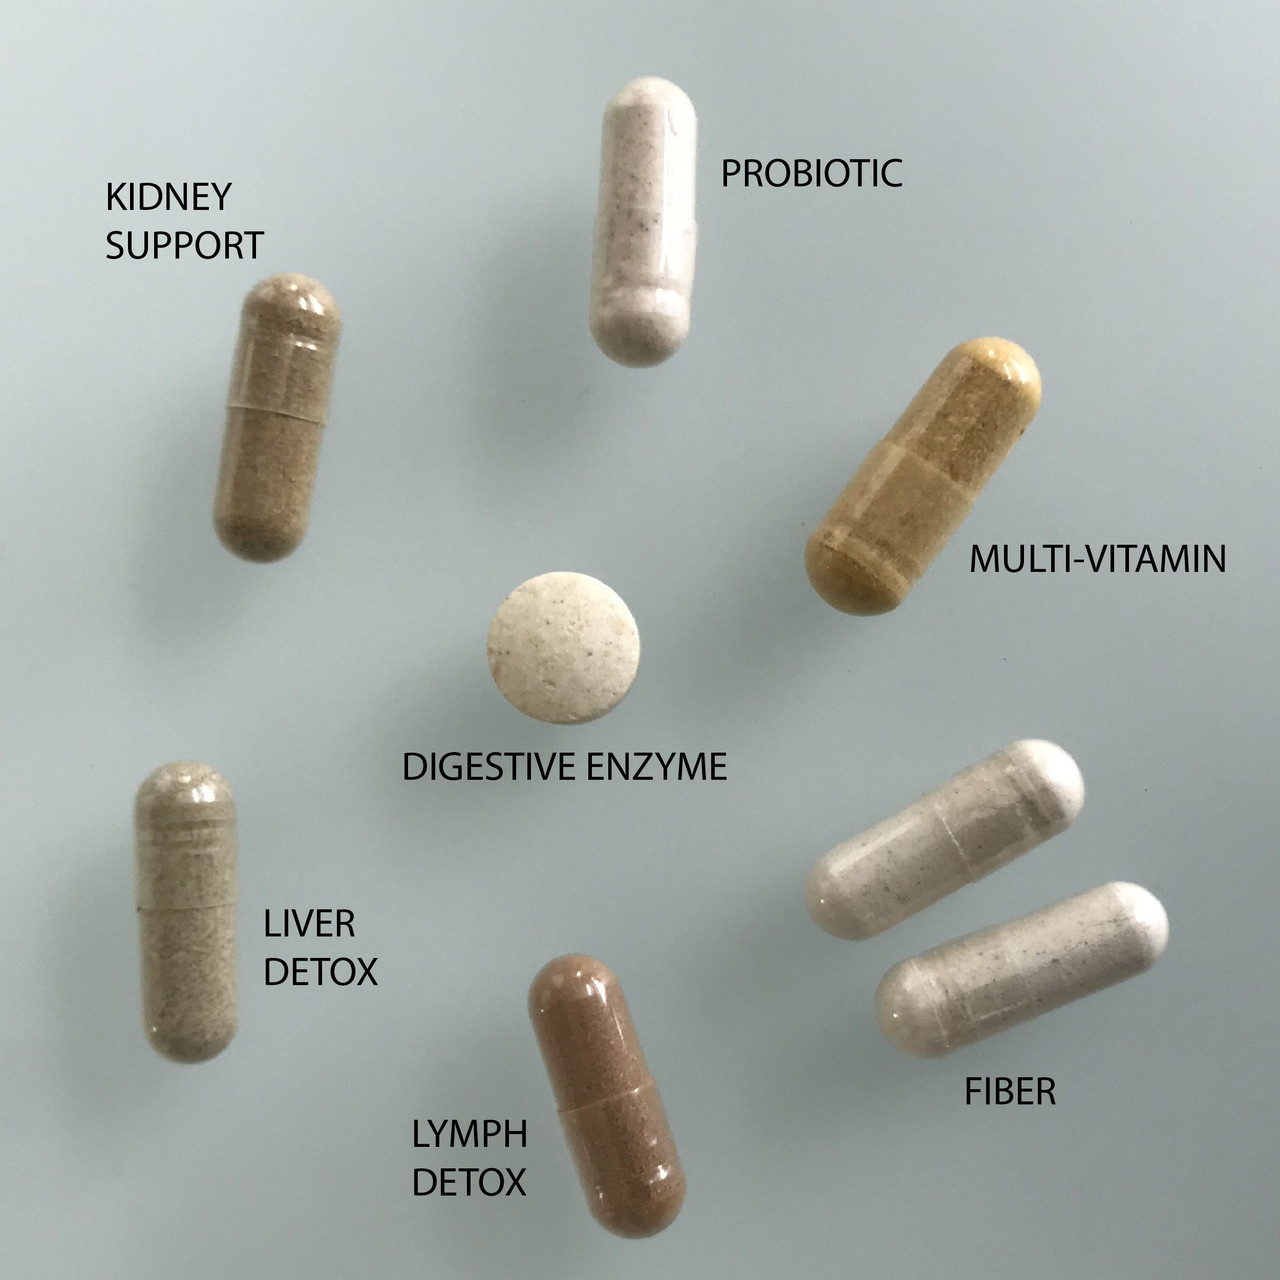 Clearing and Support Packs - Each pill identified